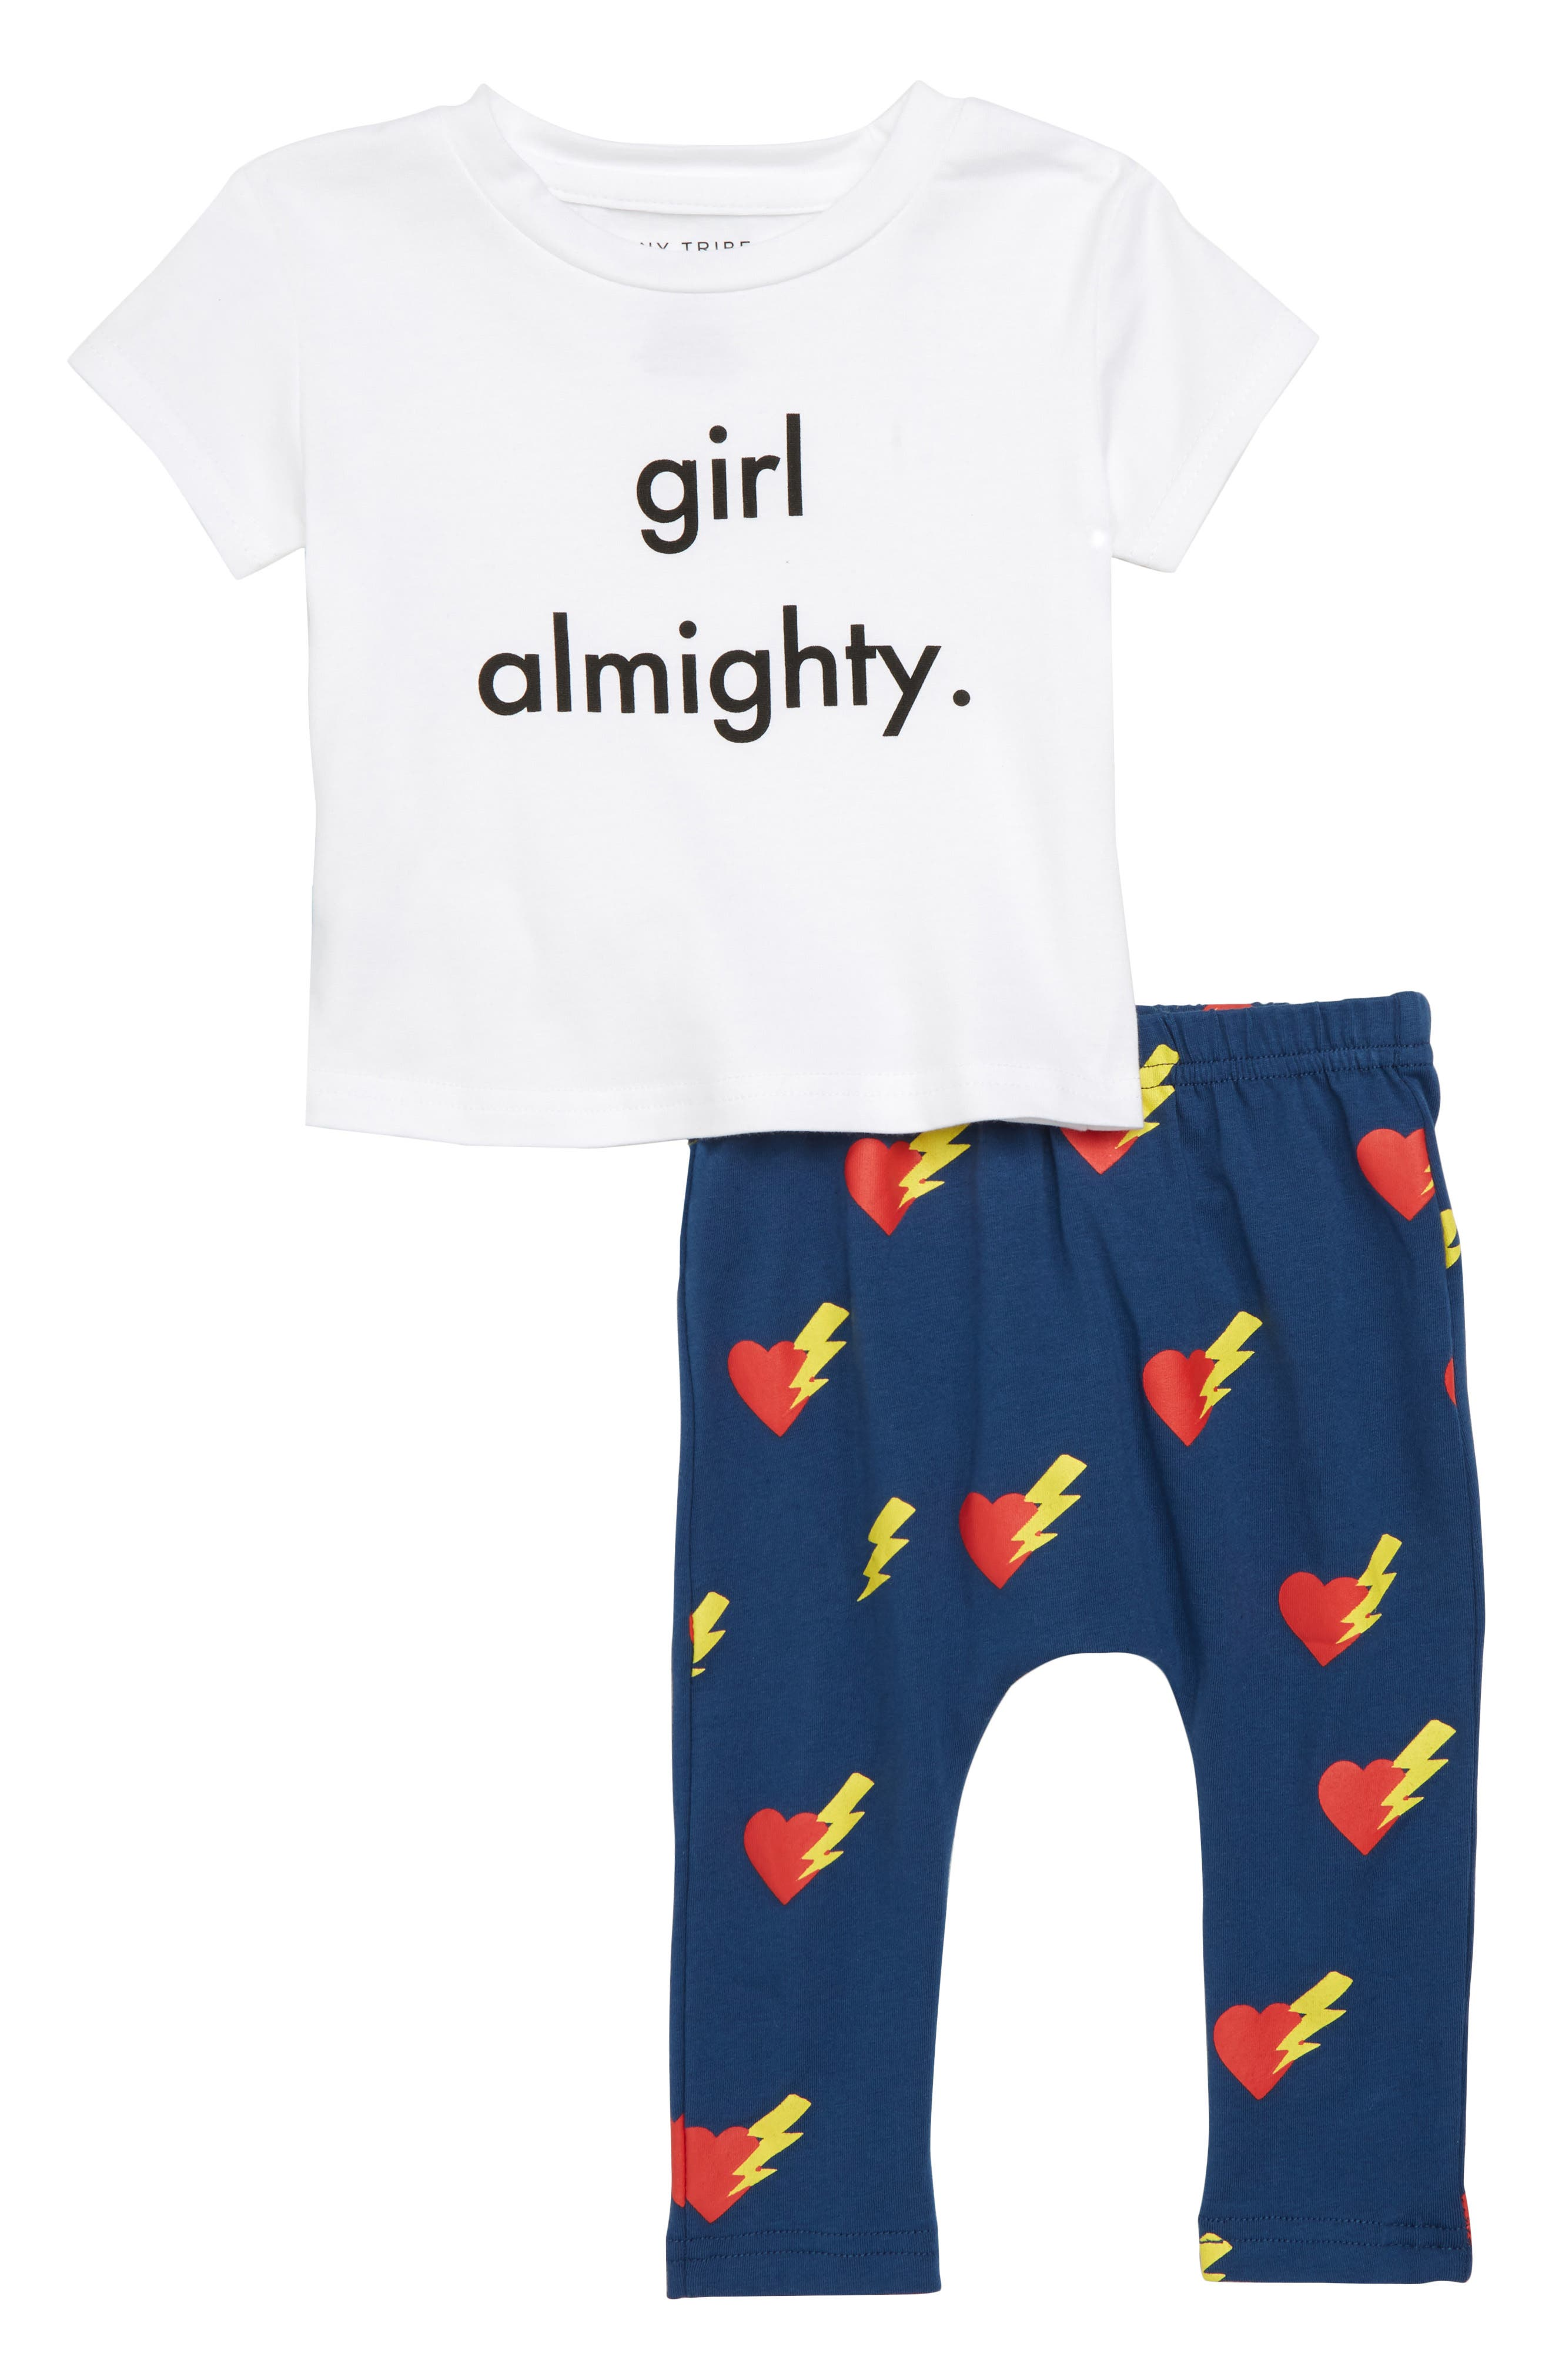 Girls Almighty Tee & Leggings Set,                         Main,                         color, 109